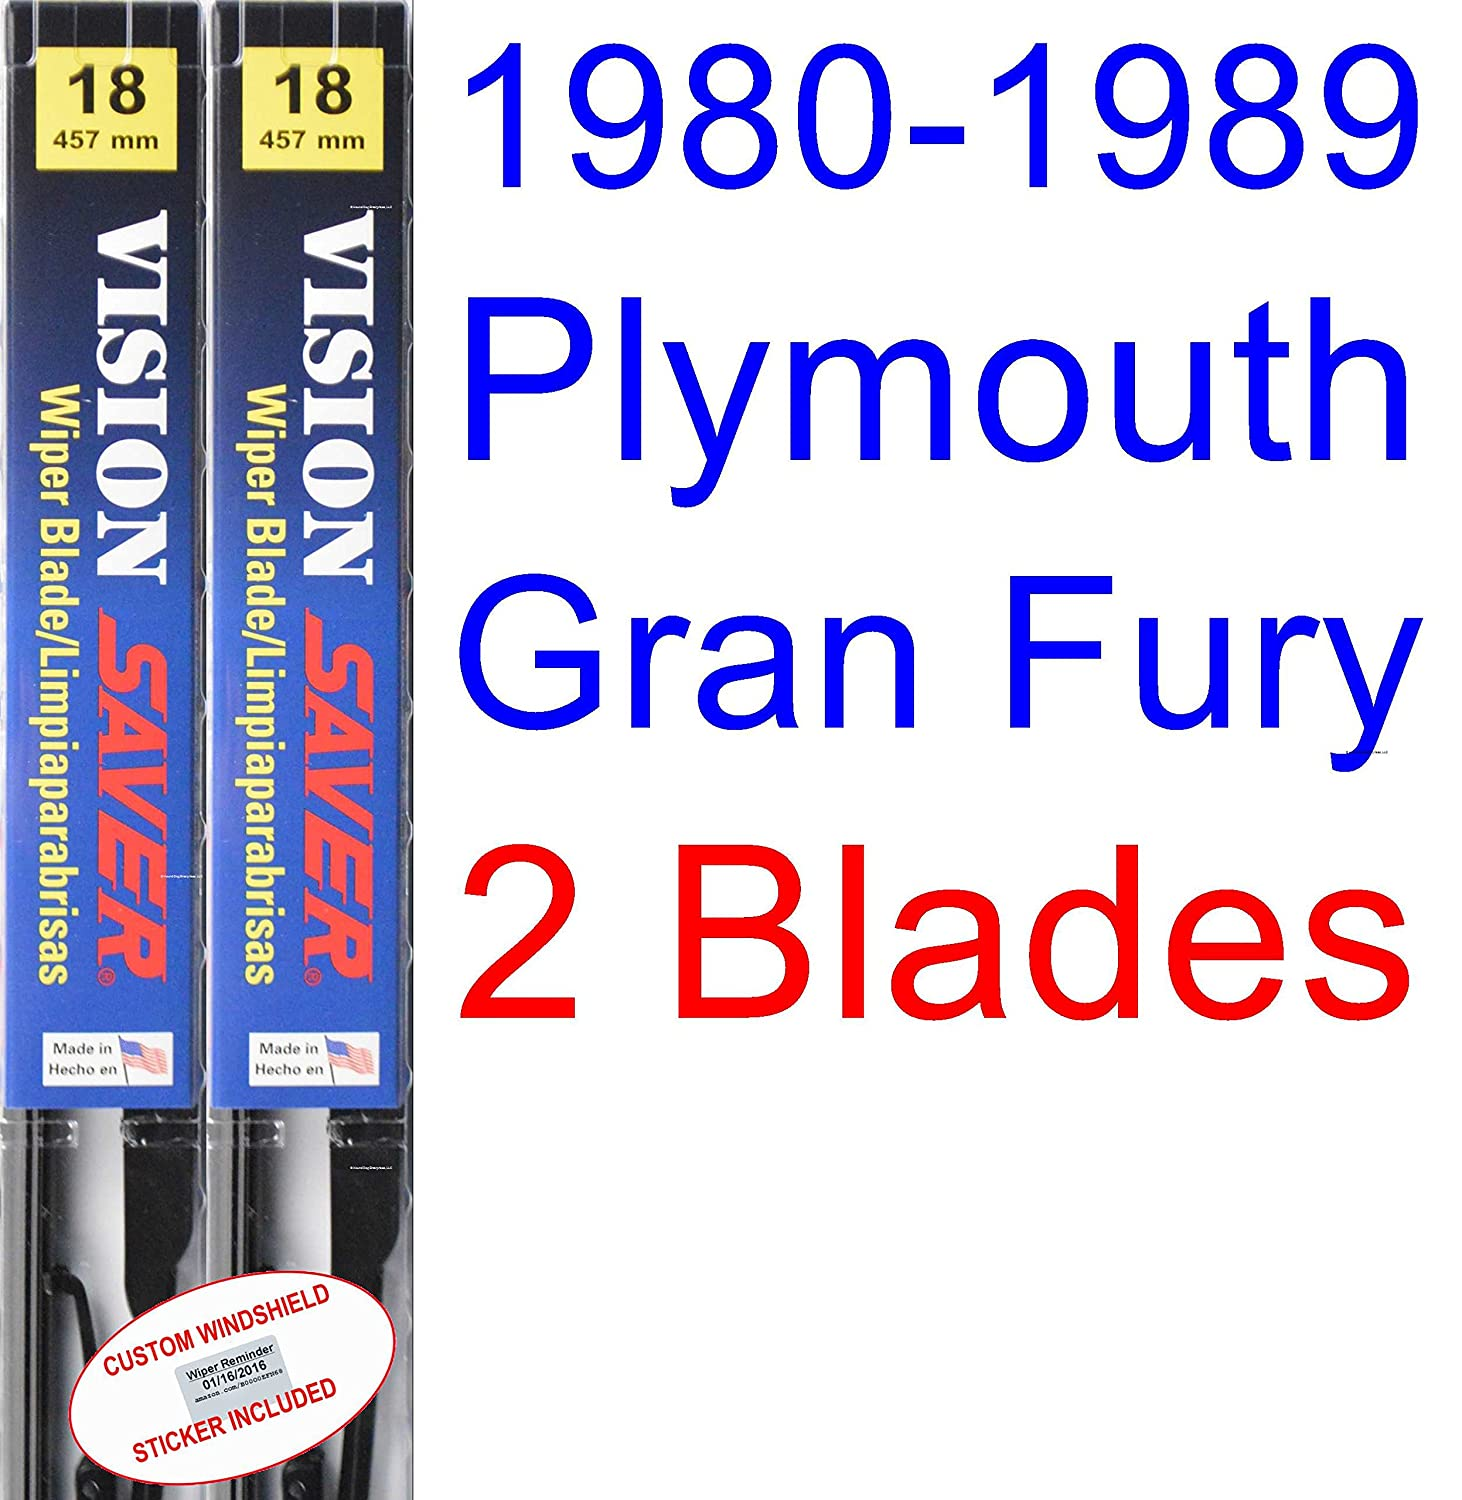 Amazon.com: 1980-1989 Plymouth Gran Fury Wiper Blade (Driver) (Saver Automotive Products-Vision Saver) (1981,1982,1983,1984,1985,1986,1987,1988): Automotive